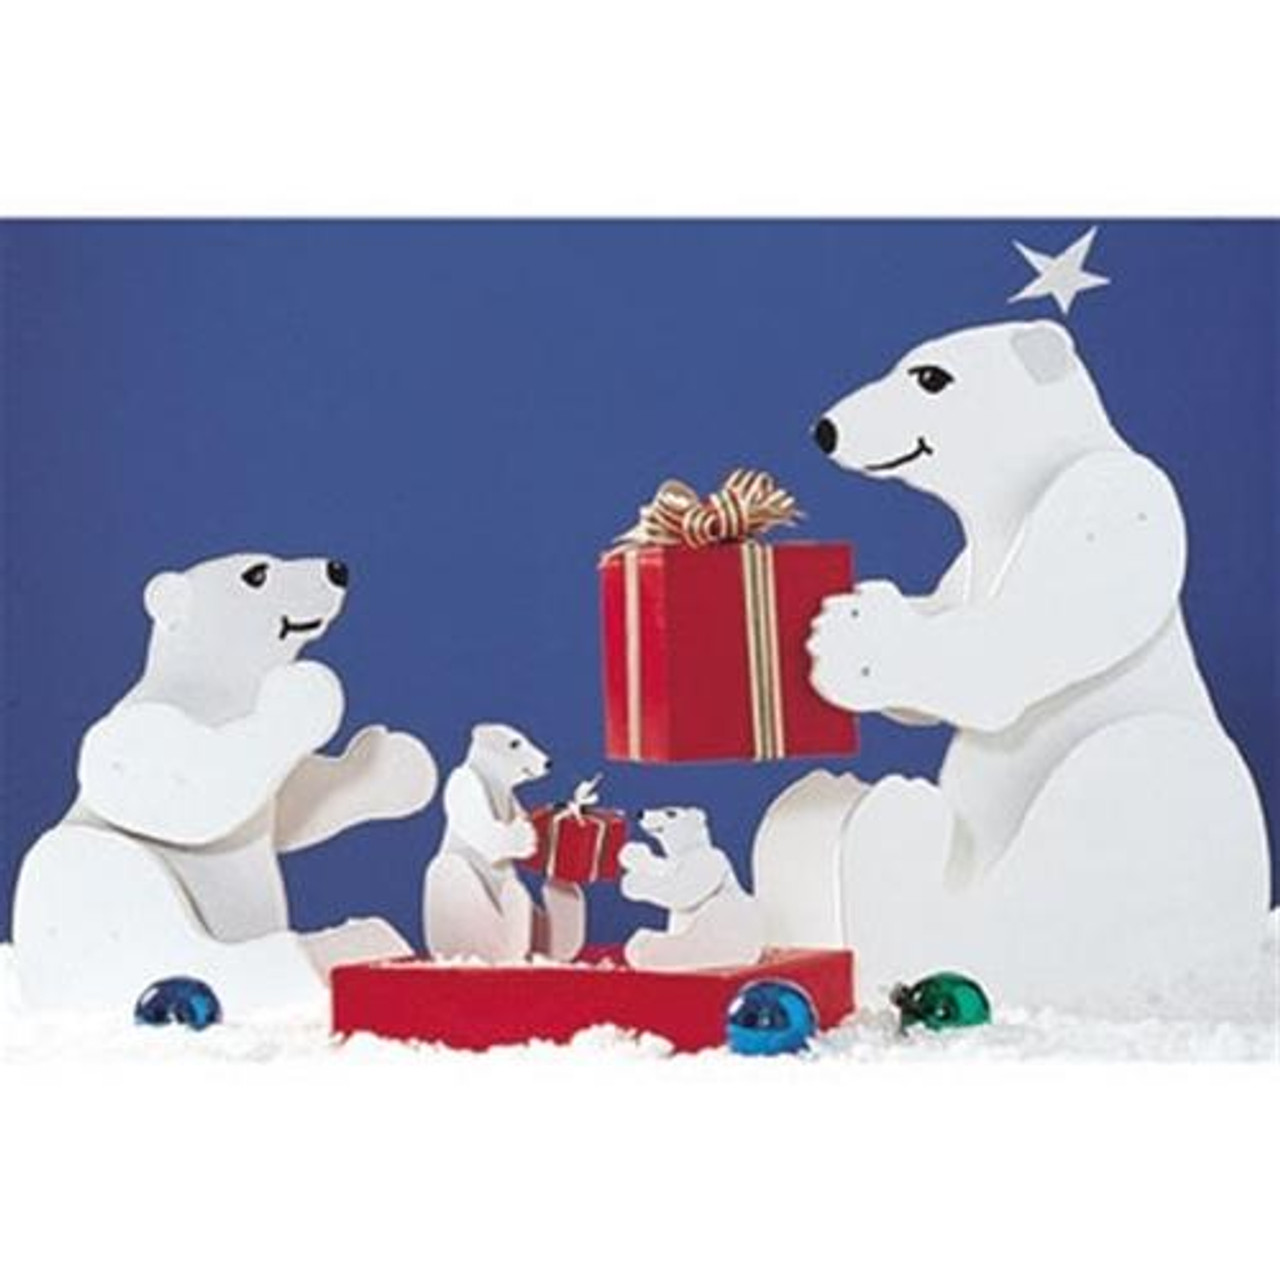 Wood Magazine Medium and Small Polar Bears Woodworking Plan is perfect for your holiday decorations.